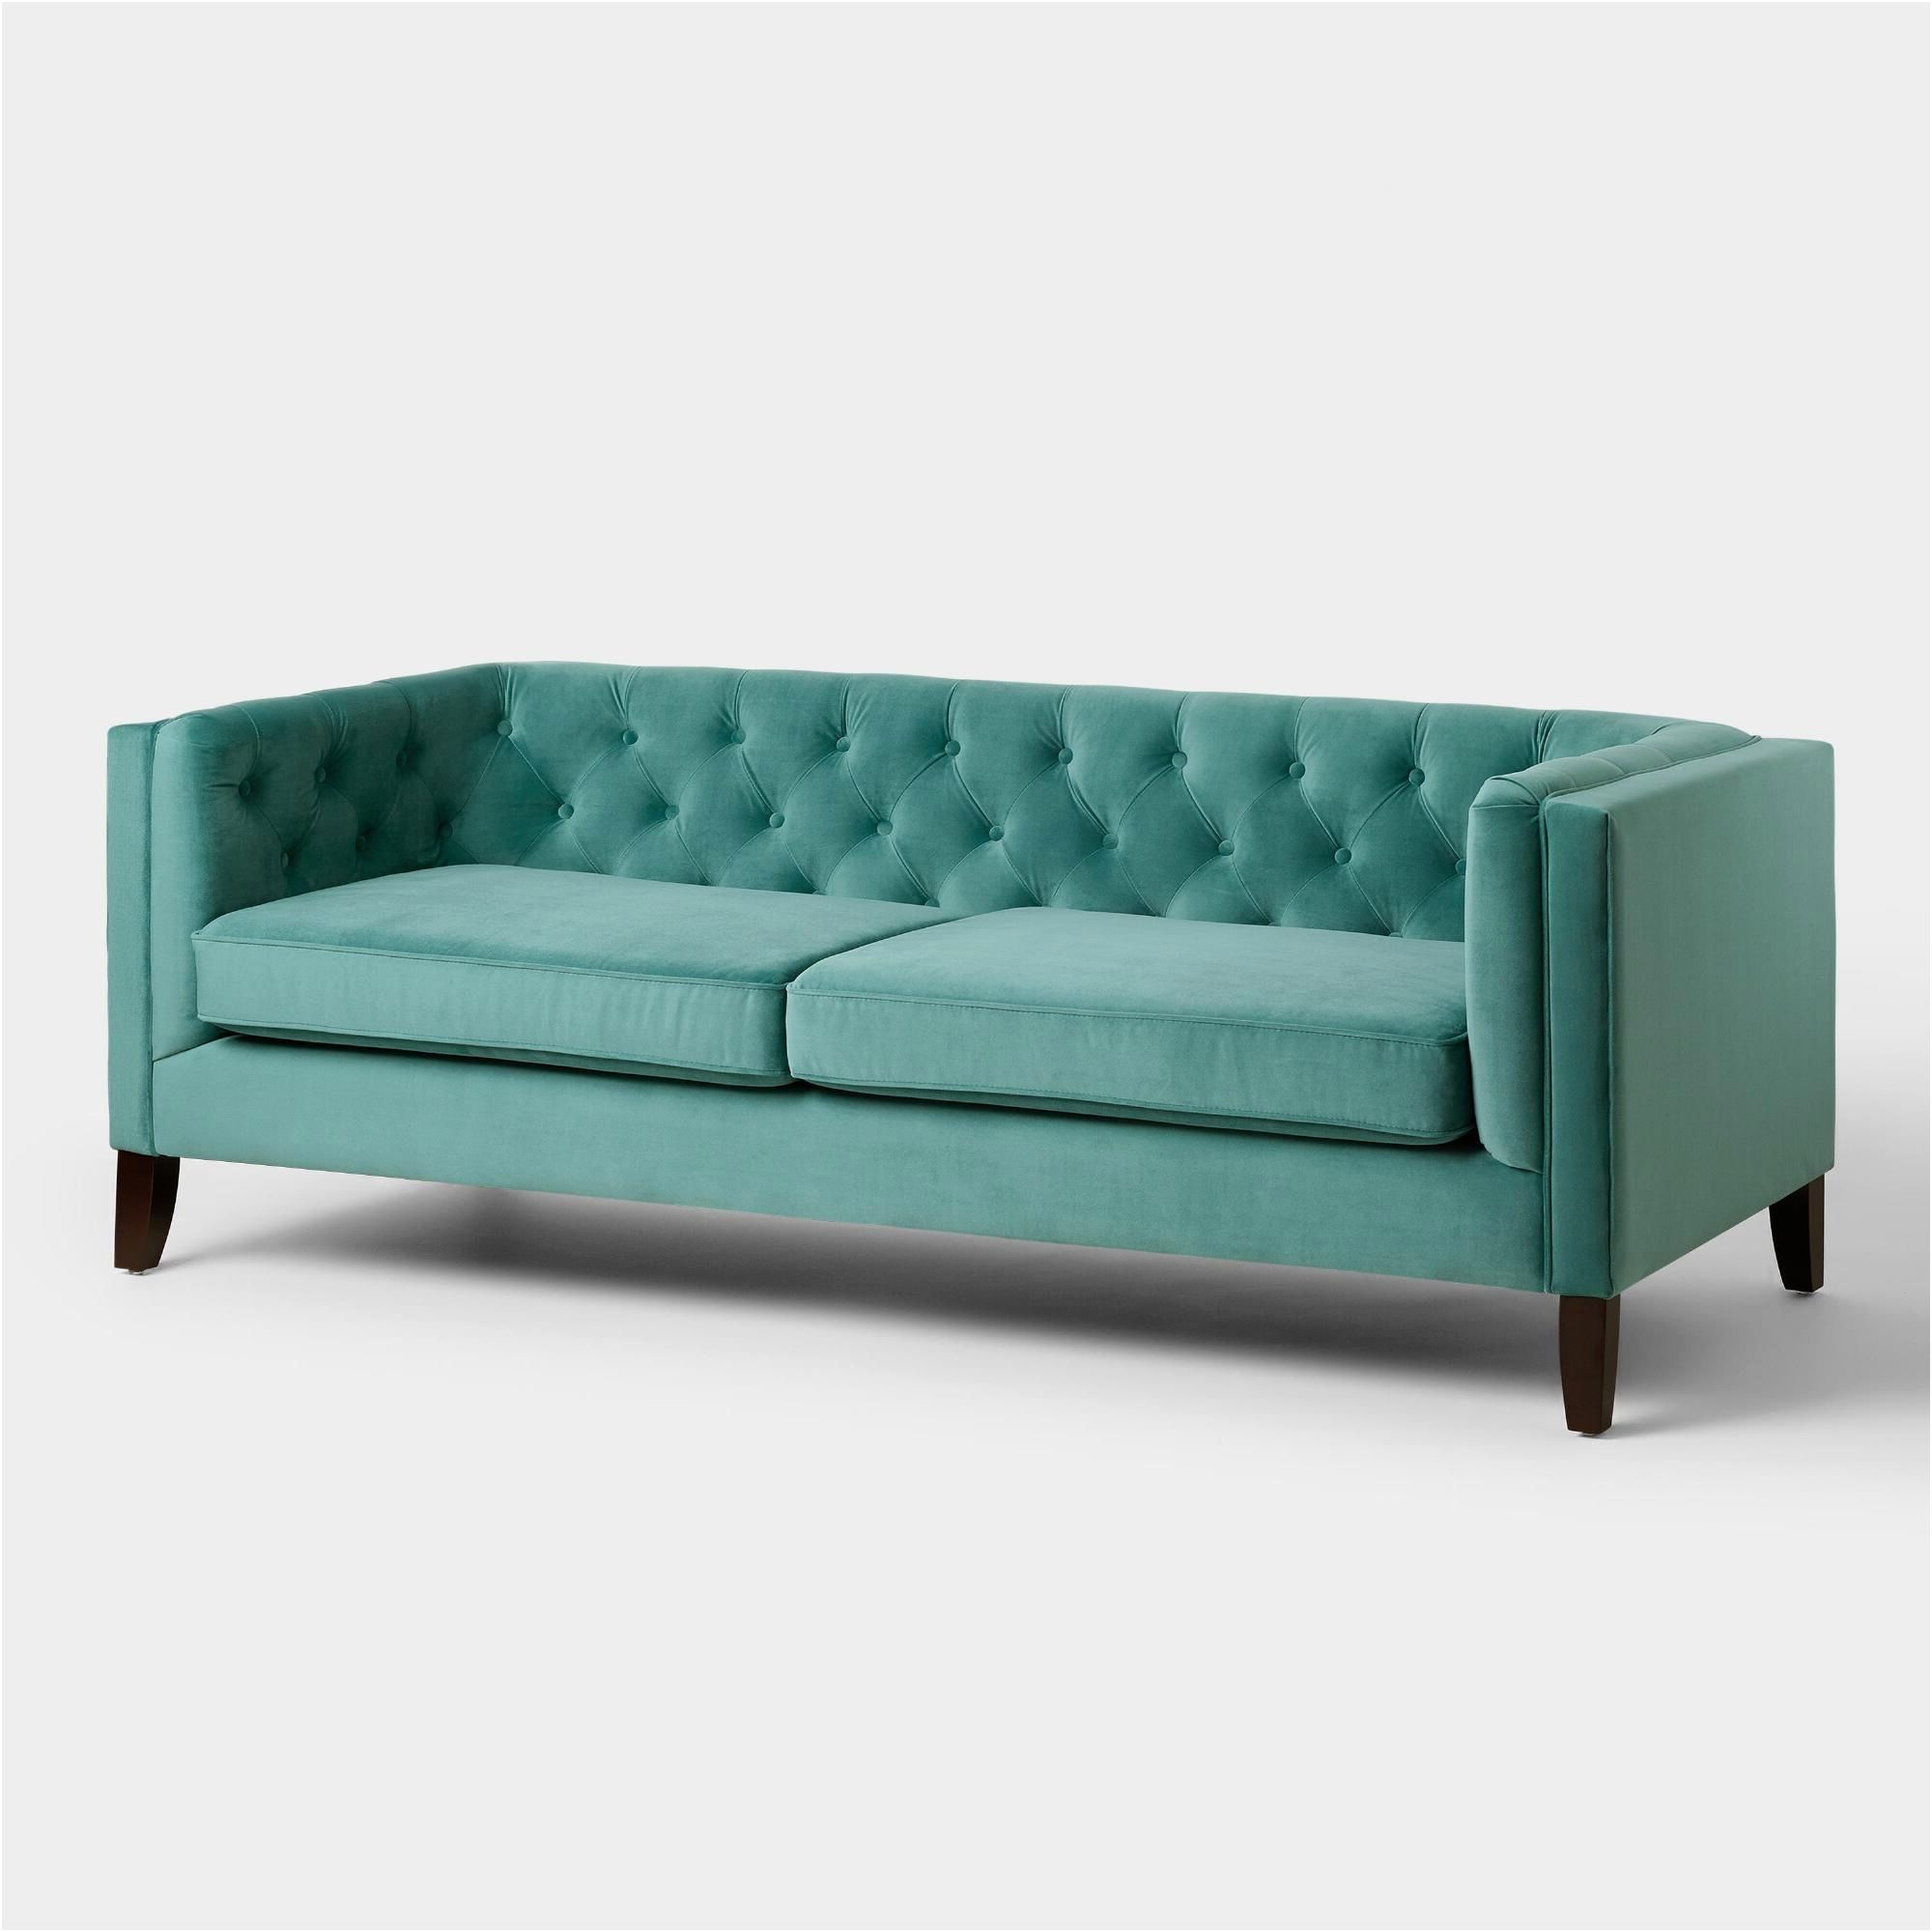 excellent navy tufted sofa picture-Elegant Navy Tufted sofa Wallpaper